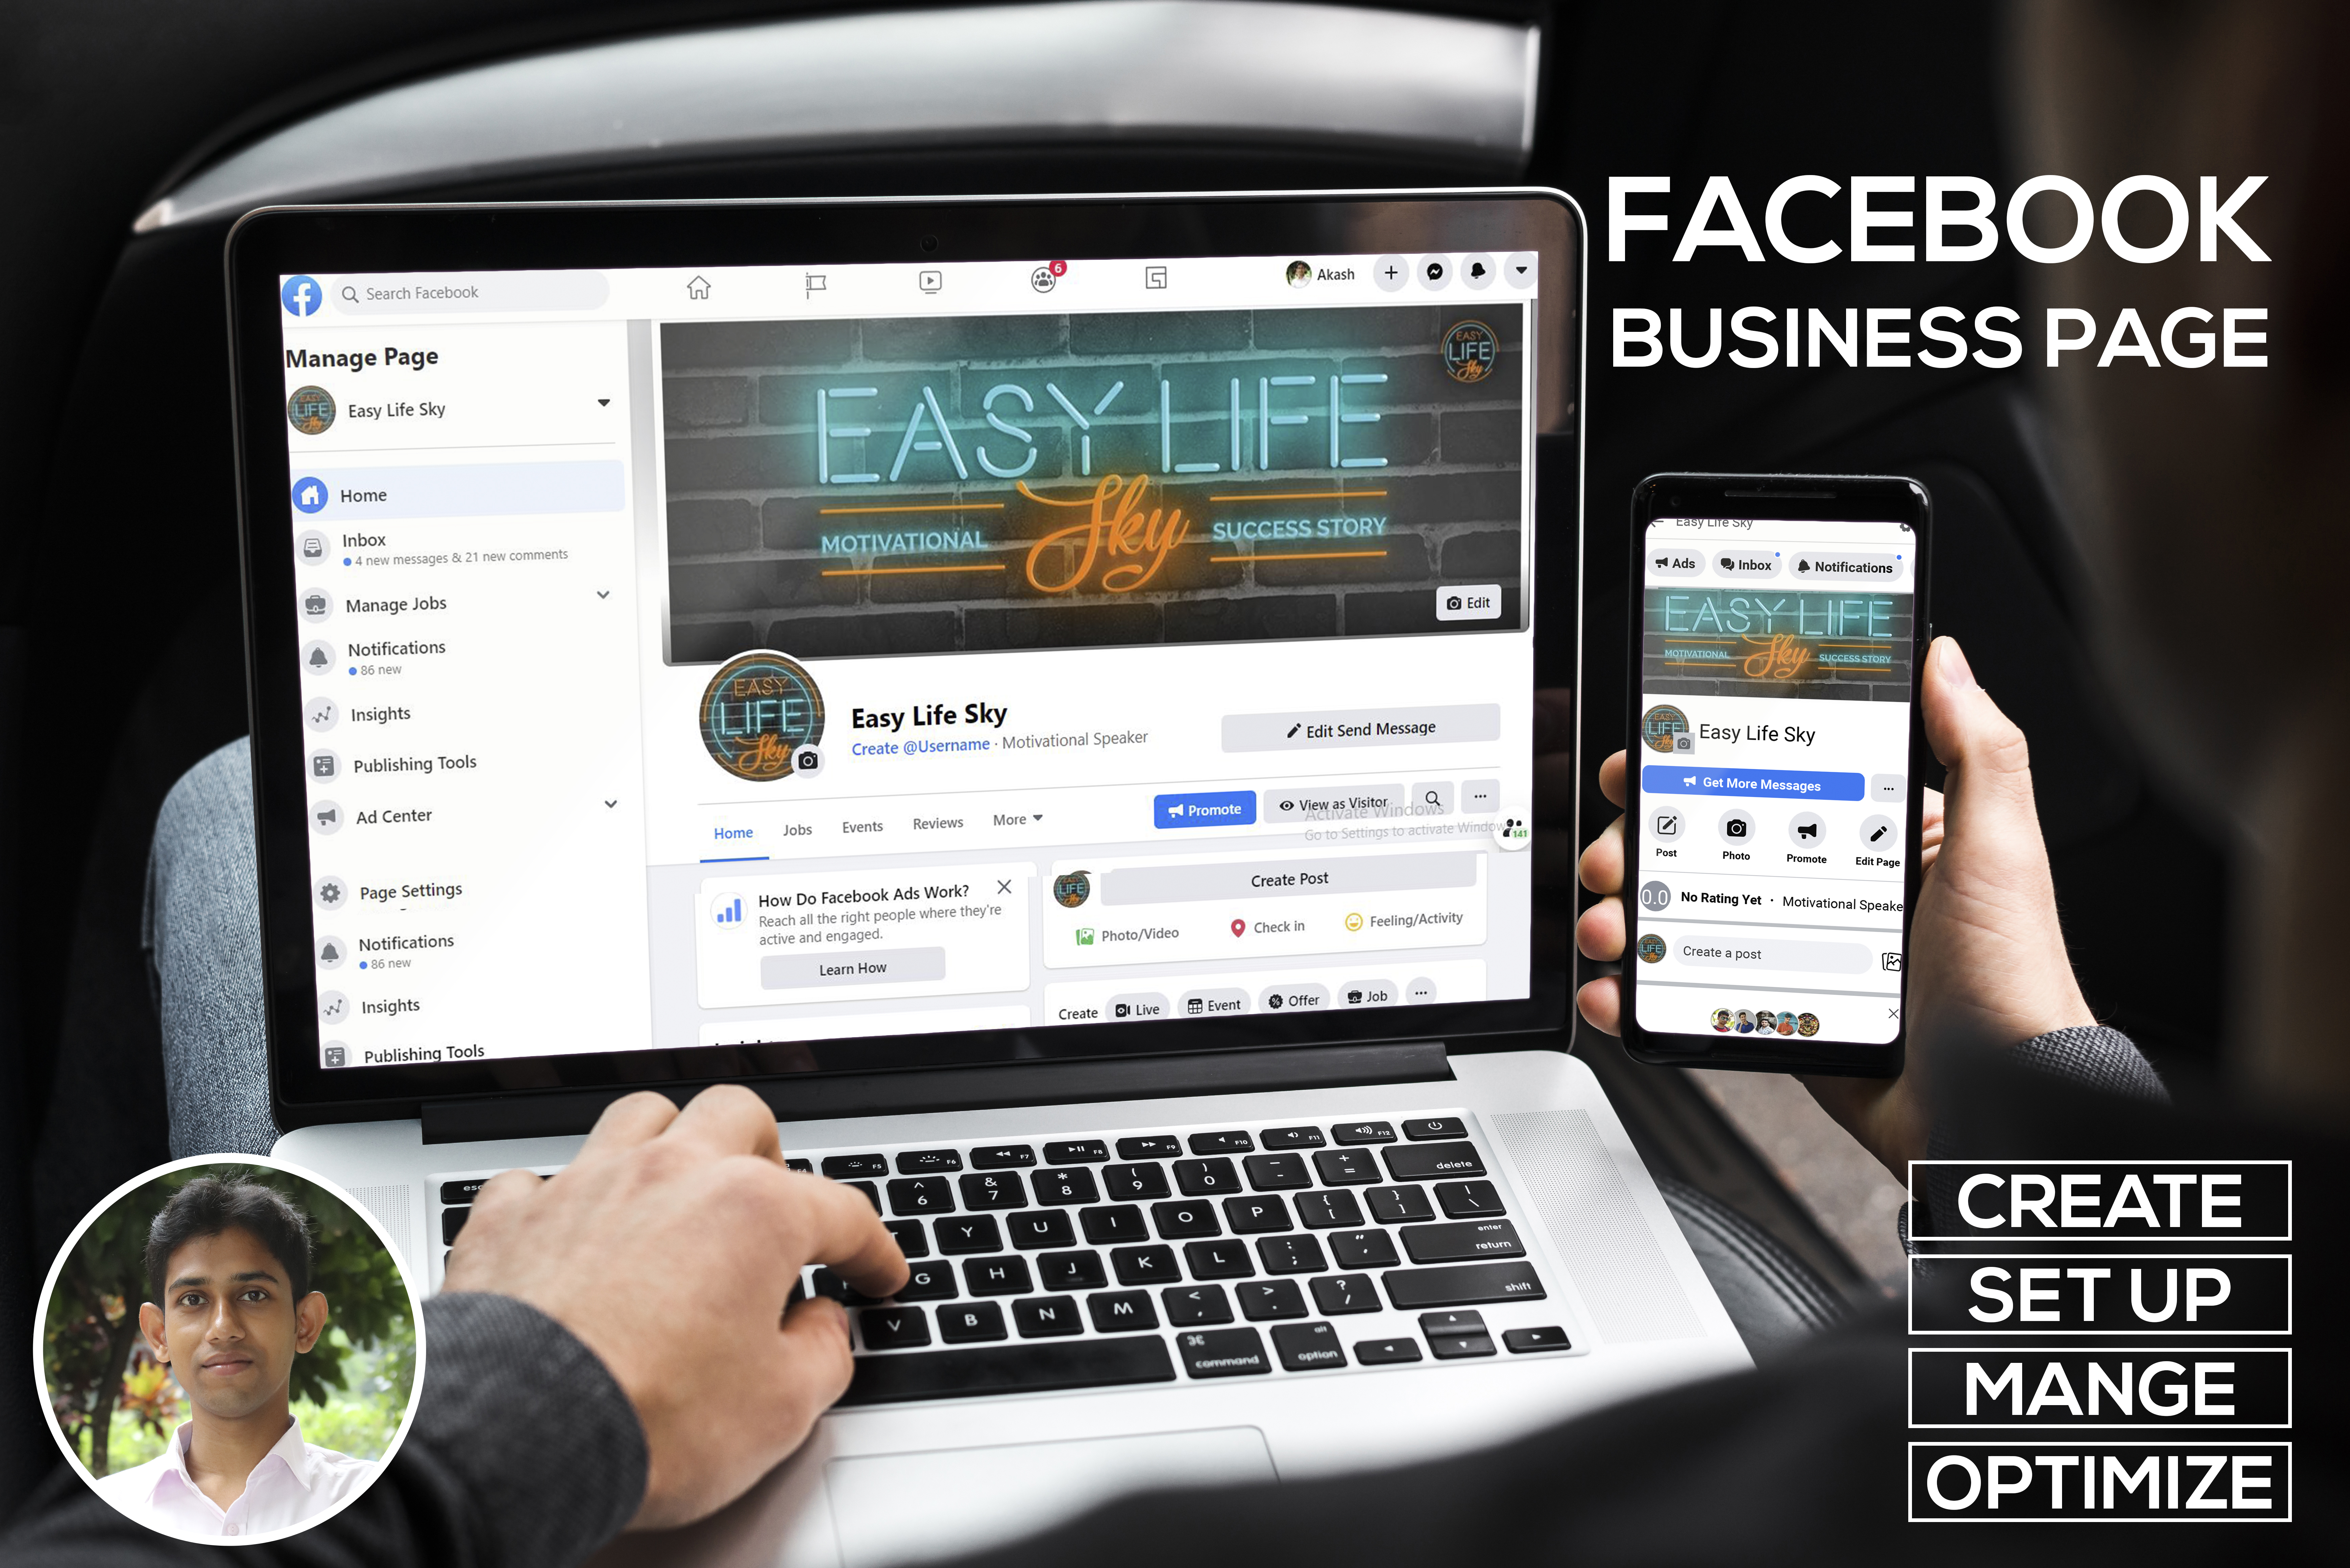 I will create a professional Facebook Business Page 24 hours